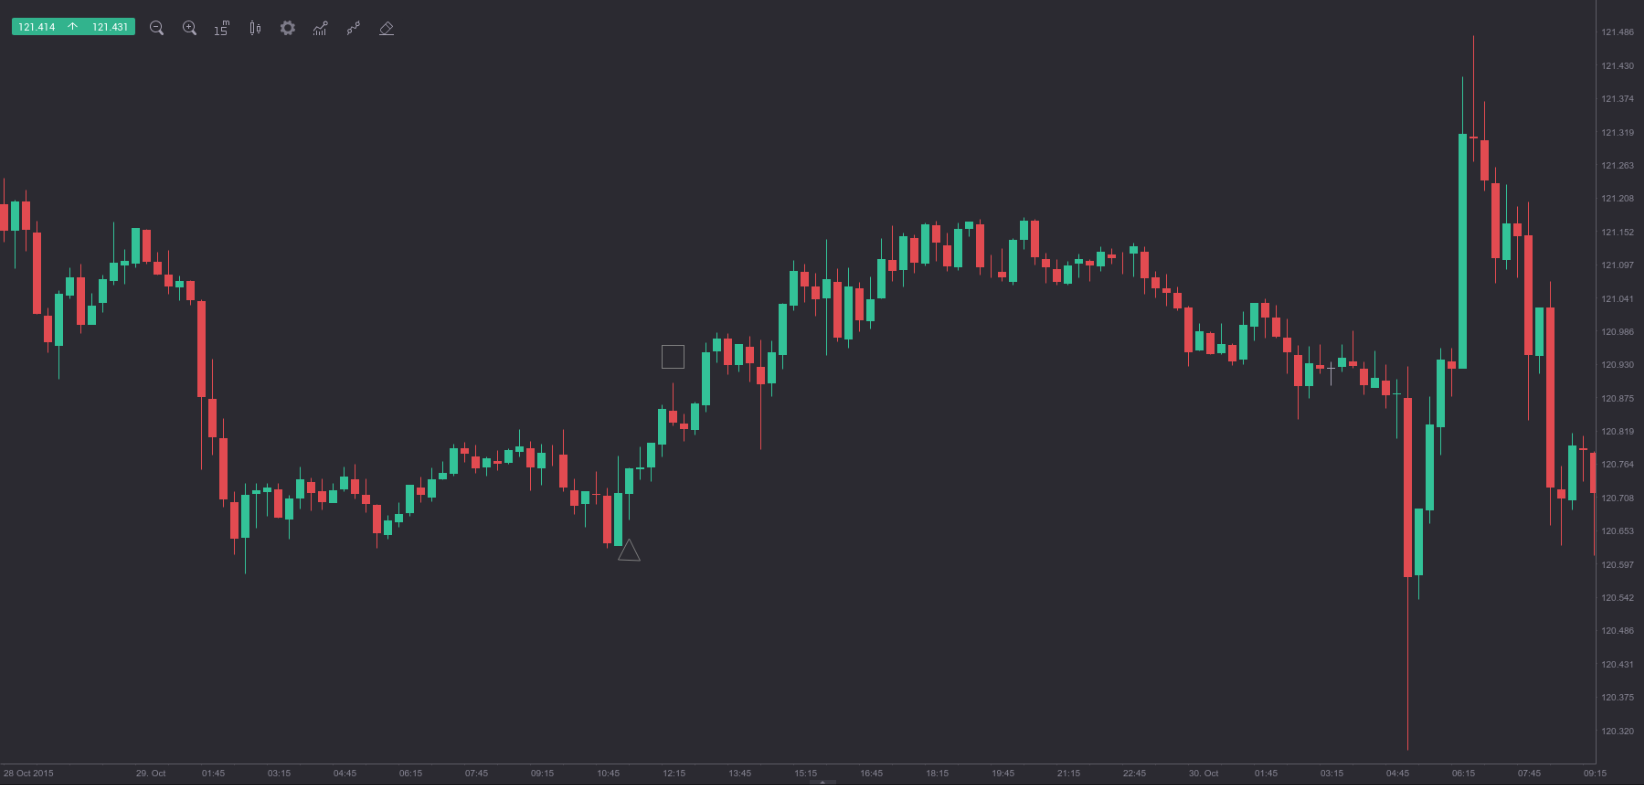 Binary options engulfing strategy games pinnacle sports betting rules and regulations